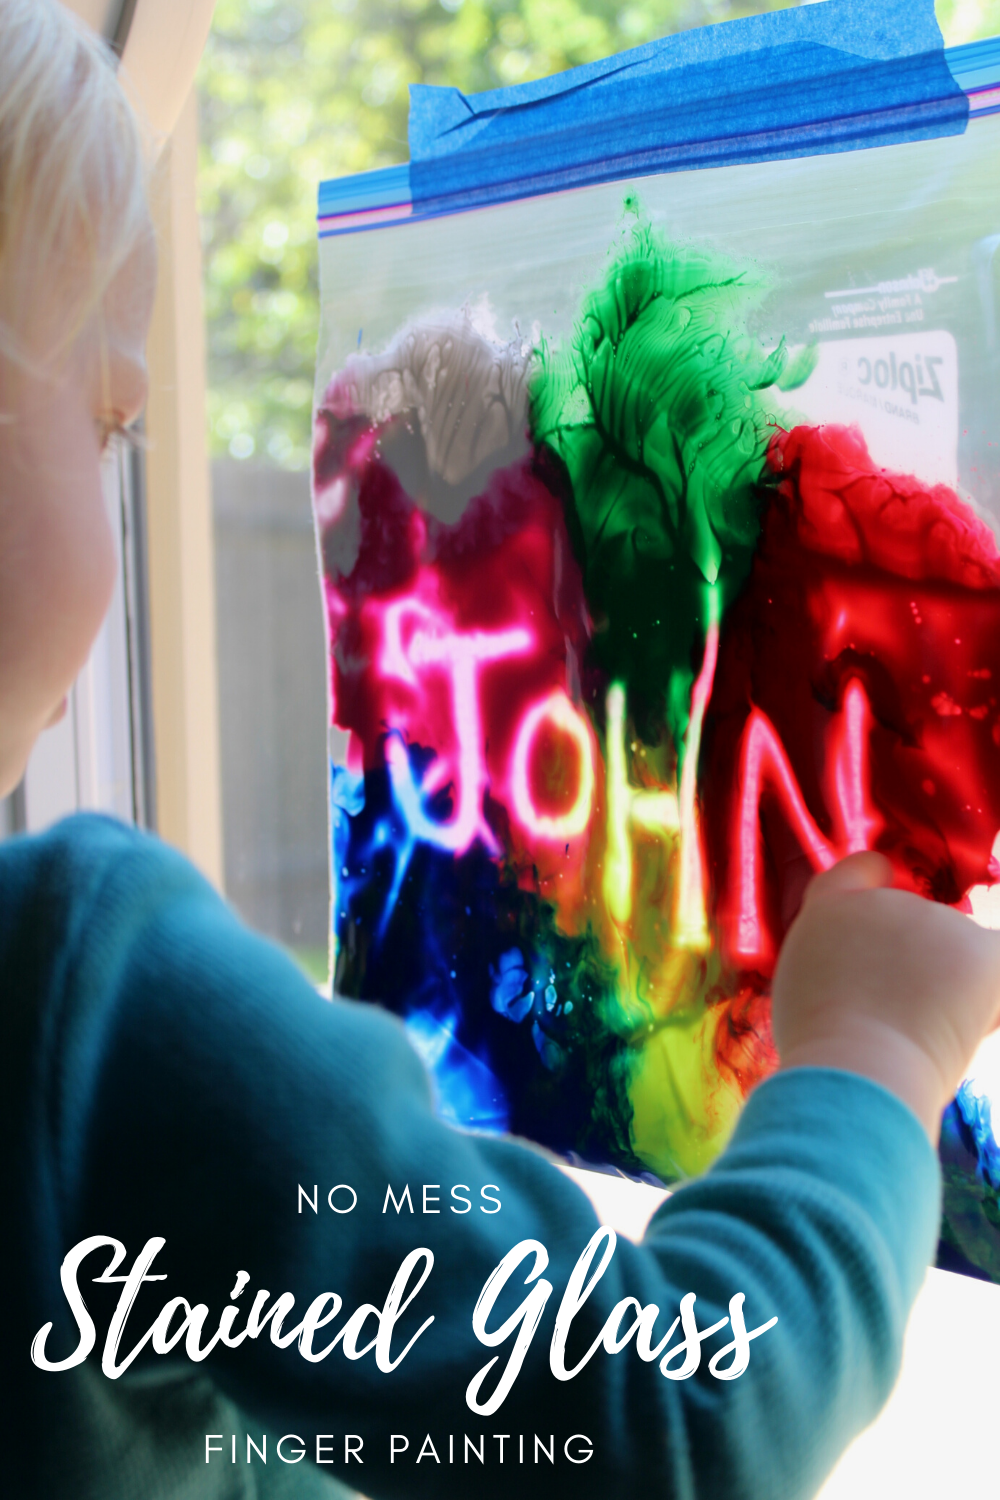 No Mess Stained Glass Finger Painting #DIYcrafting